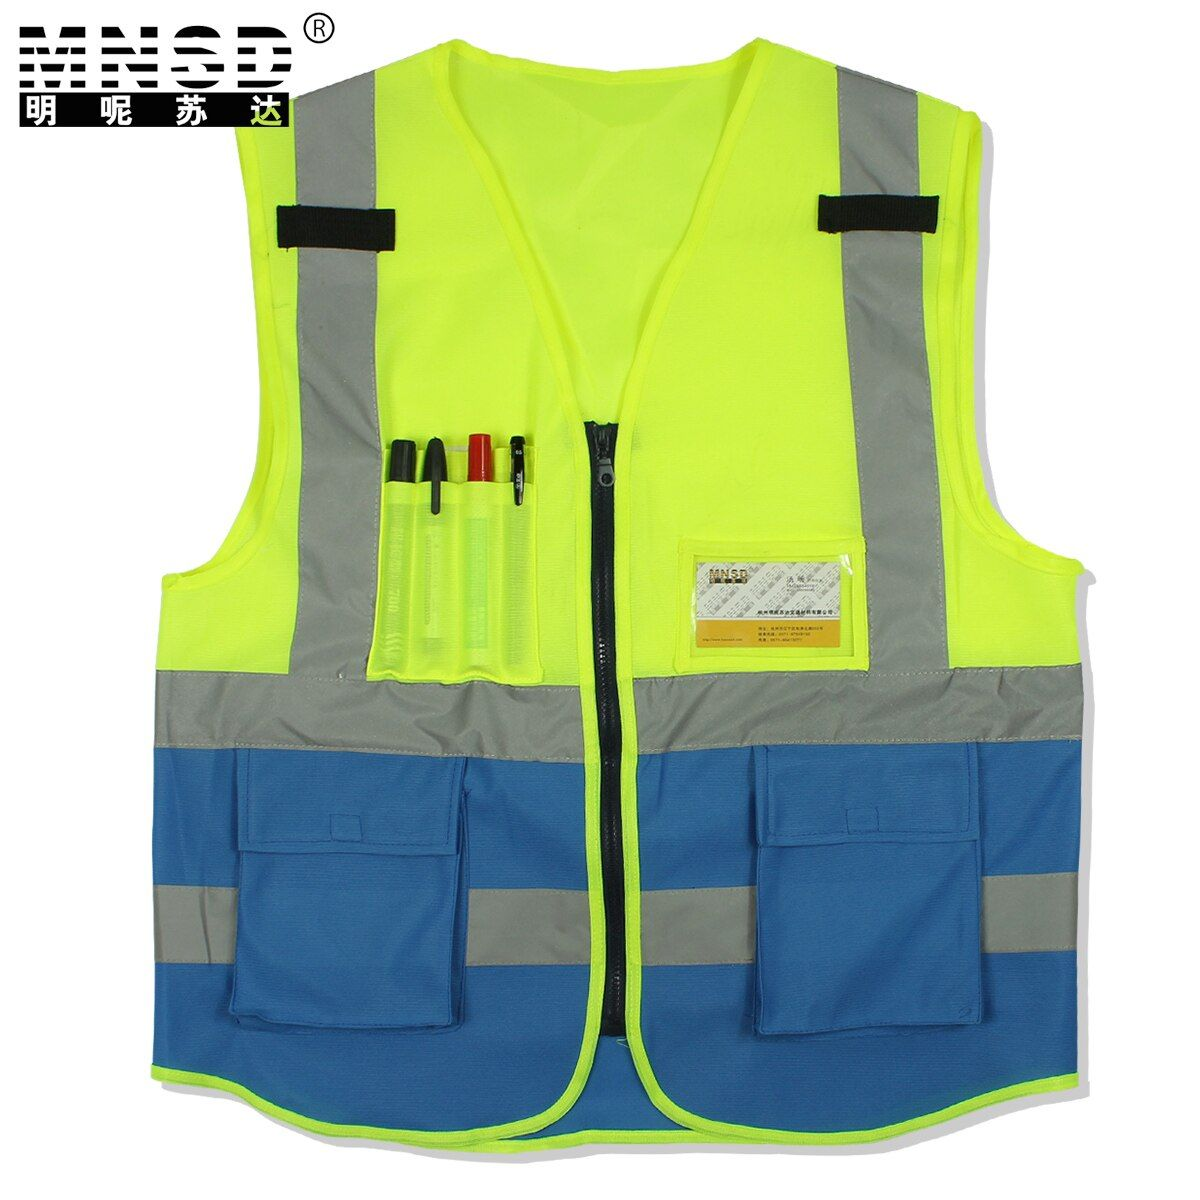 MNSD blue yellow reflective vest safety vest protective clothing chaleco reflectante gilet jaune securite ropa de seguridad